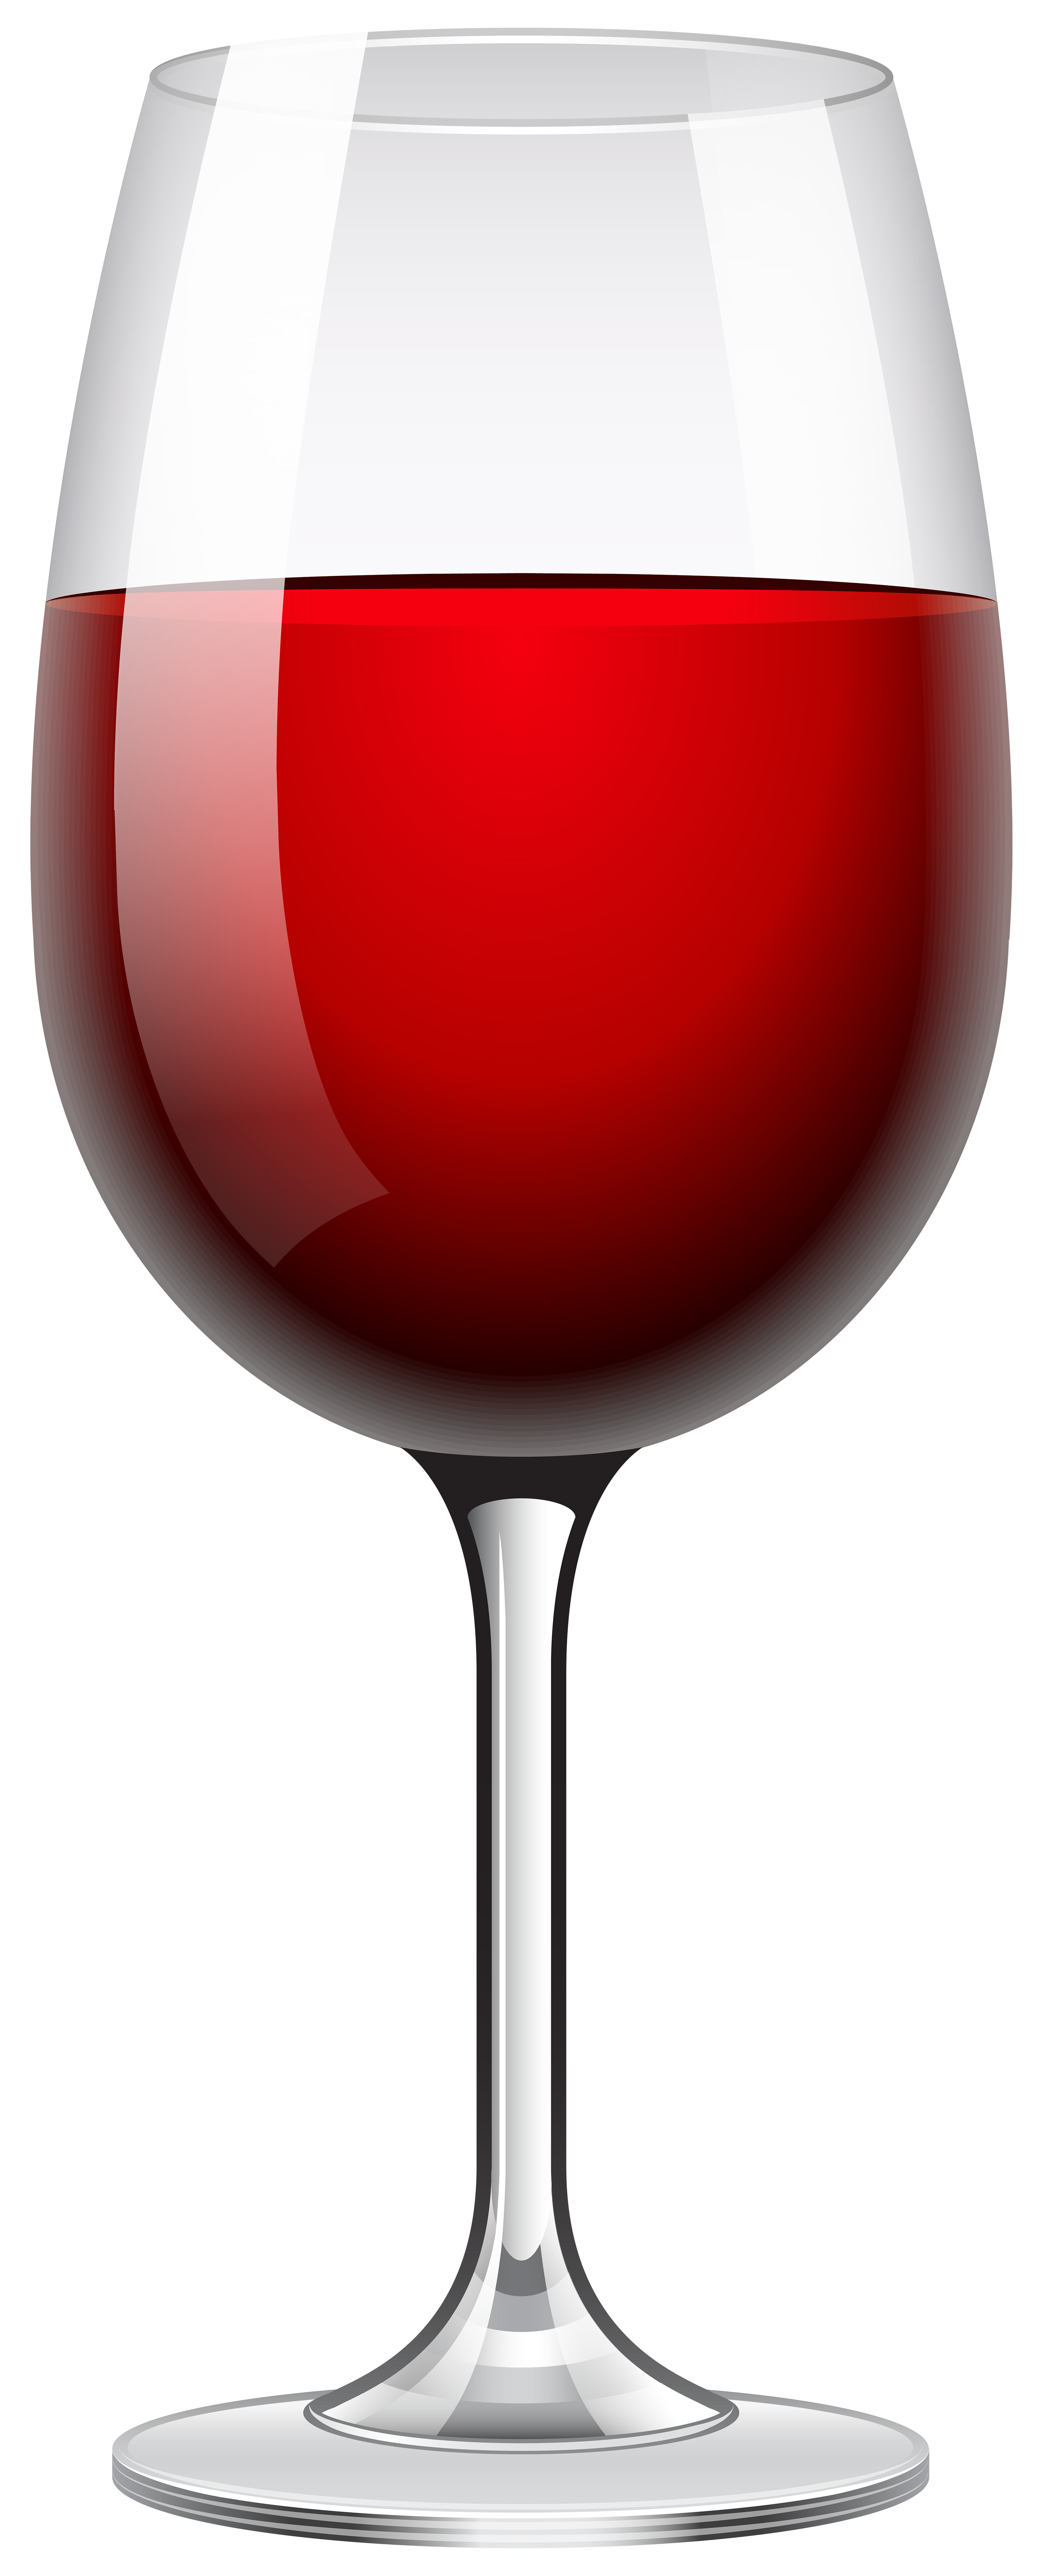 Transparent wine glass png. Red clip art image